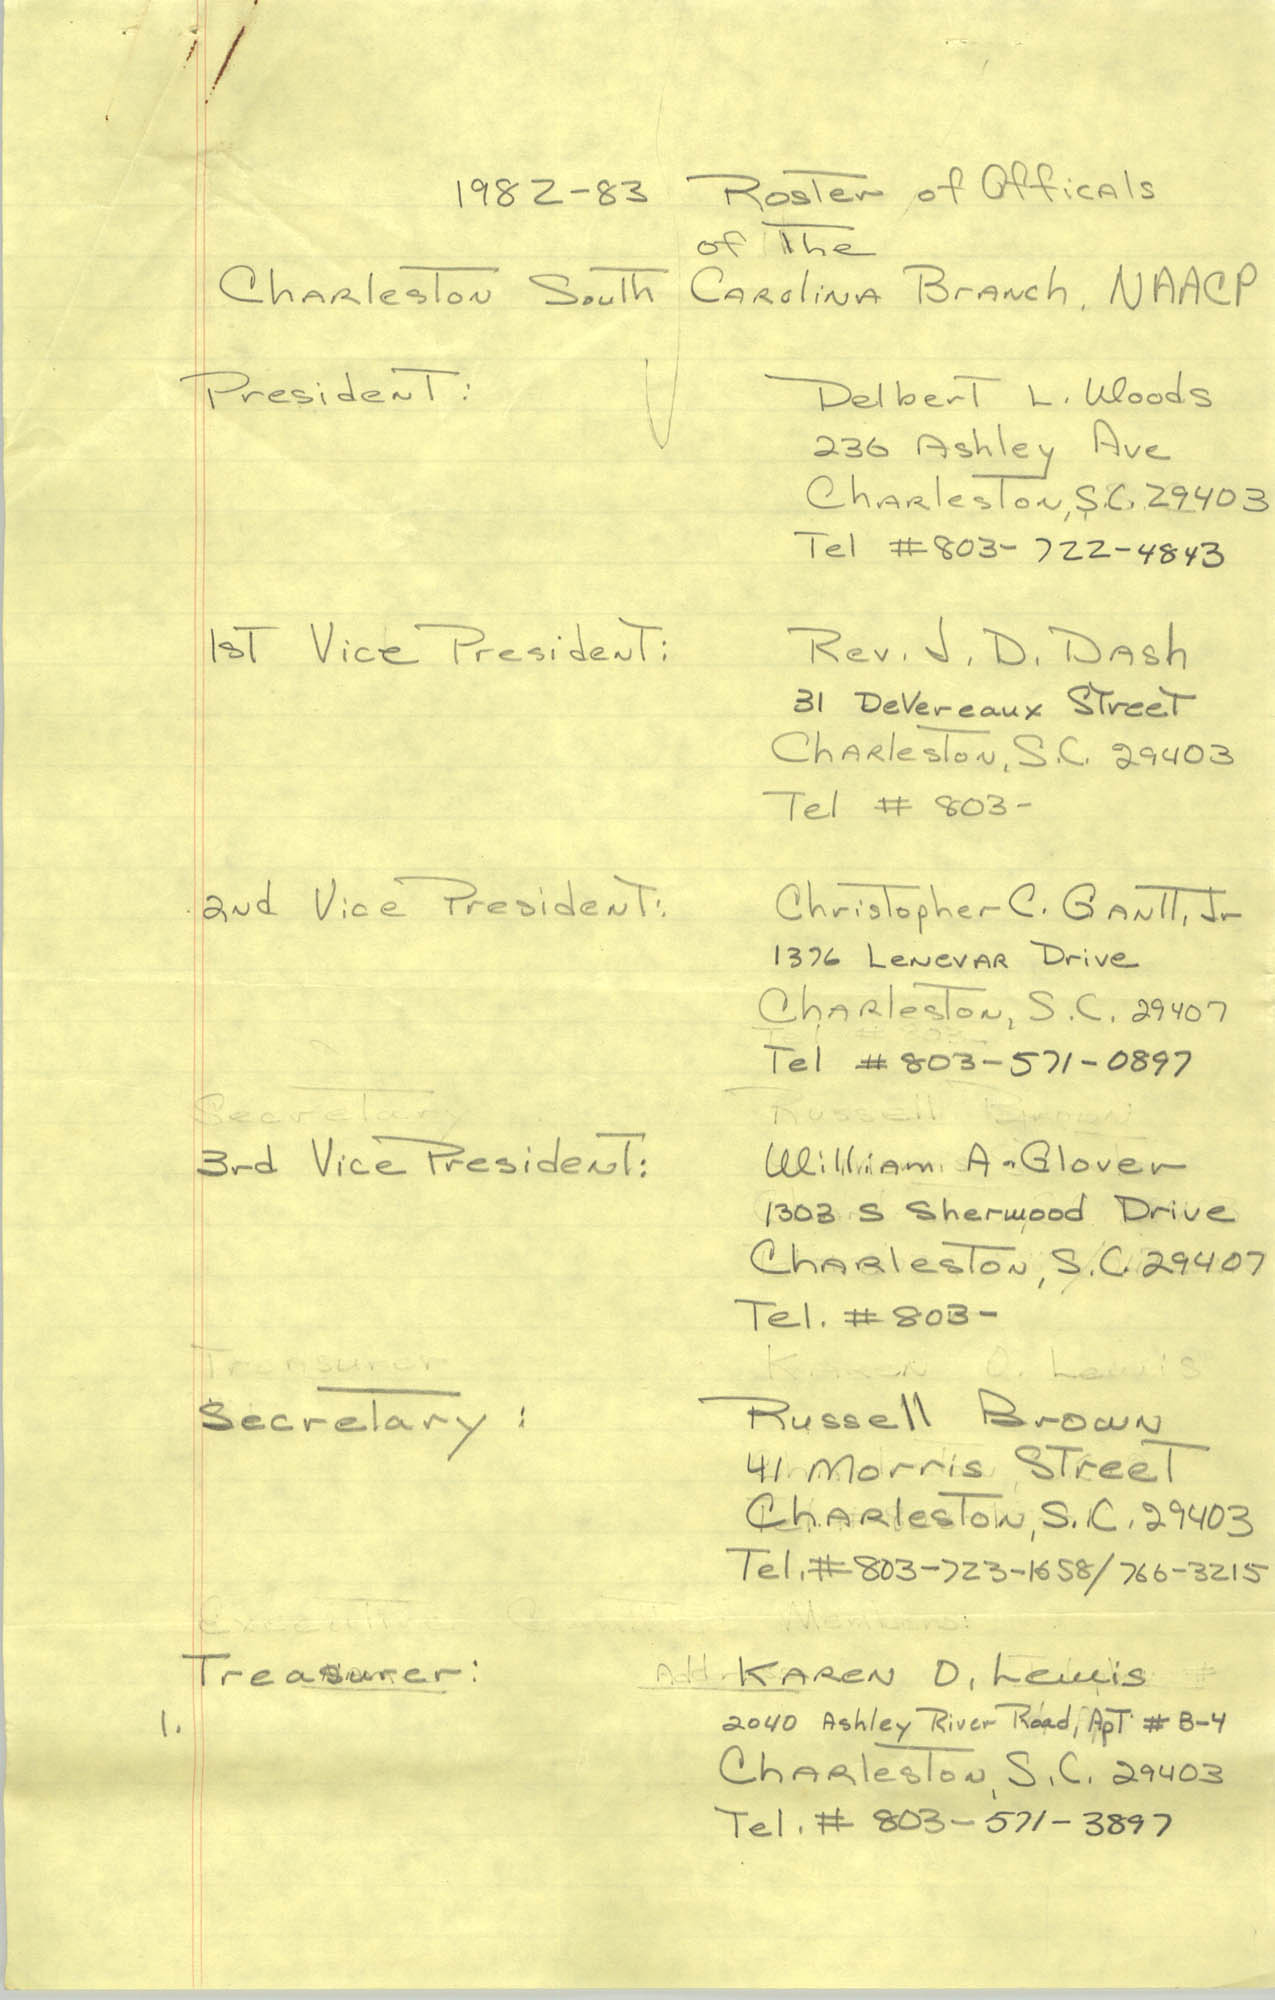 1982-83 Roster of Officials of the Charleston, South Carolina Branch of the NAACP, Page 1